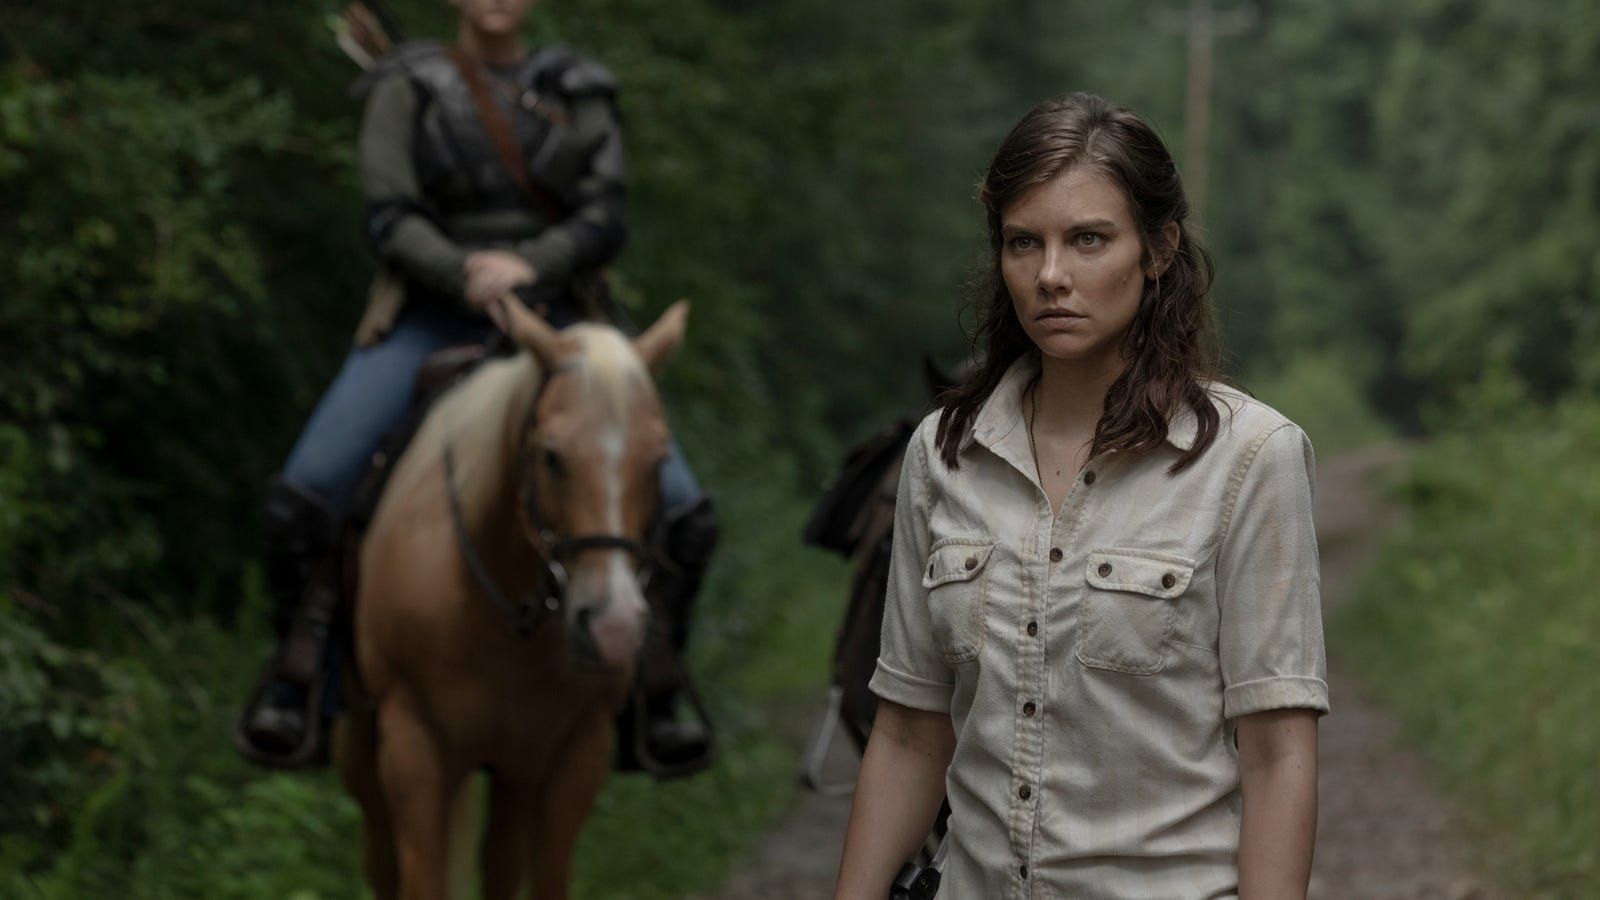 It's Zombie Christmas as The Walking Dead gets an 11th season and a returning Lauren Cohan